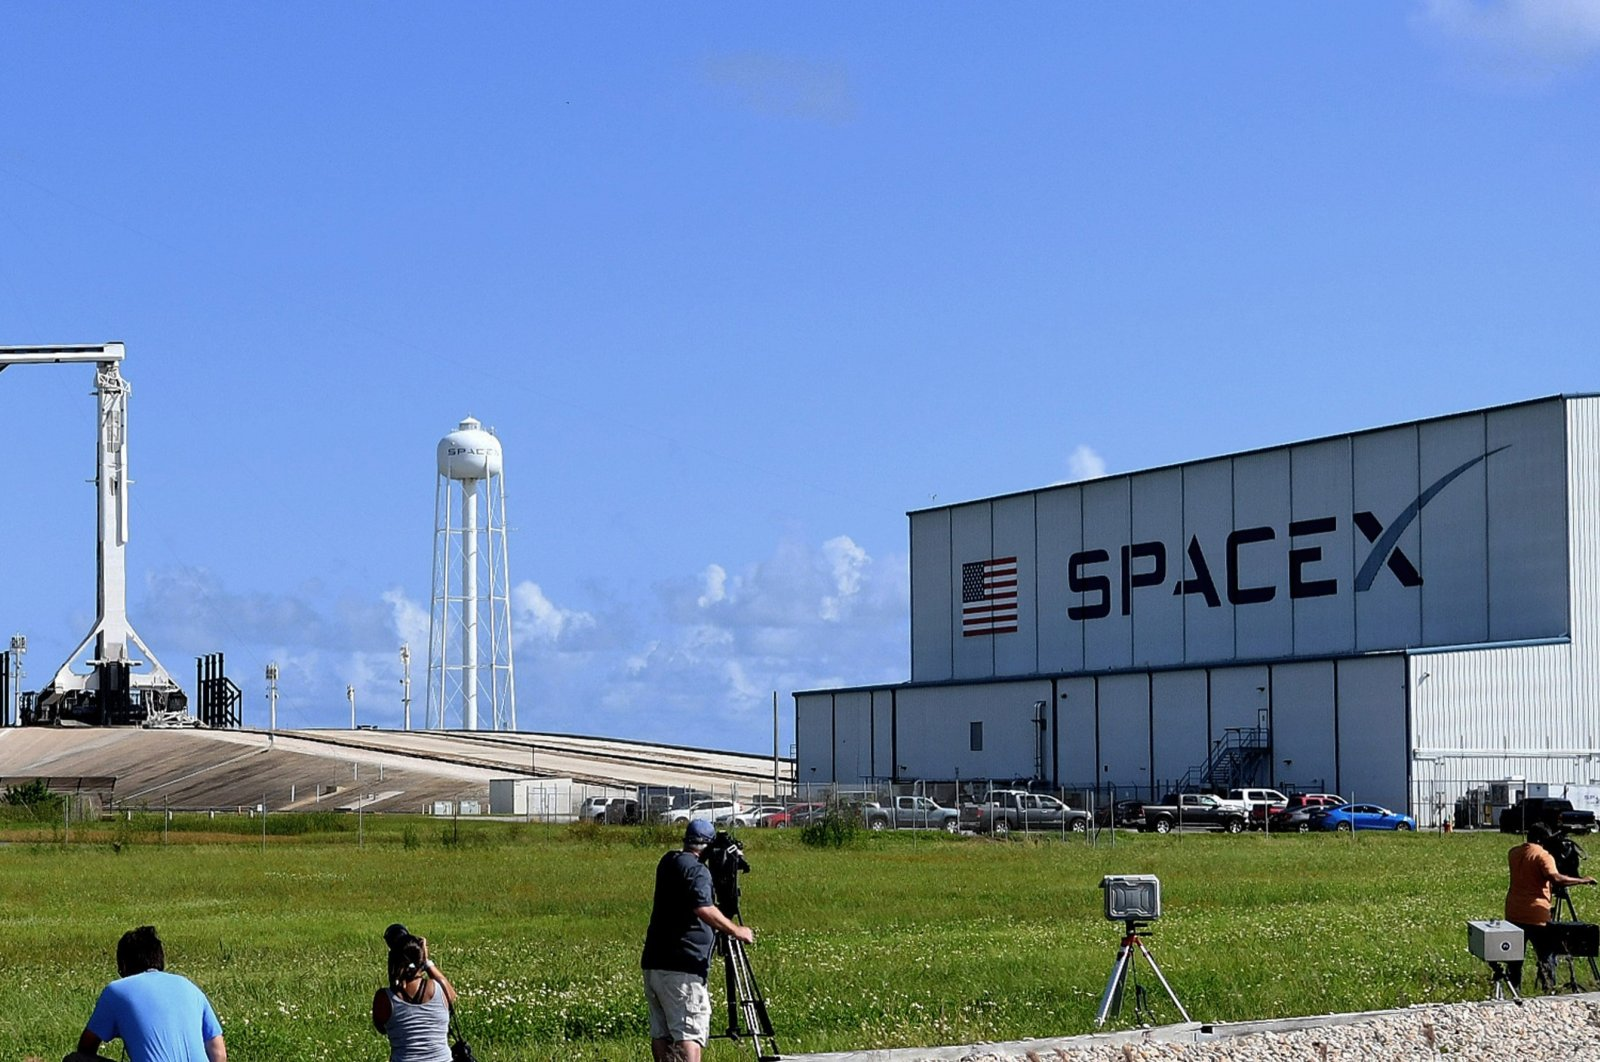 SpaceX prepares to launch the first time three-day trip around the world for four passengers with a non-astronaut rocket, Florida, U.S., Sept. 15, 2021. (Paul Hennessy via Anadolu Agency)